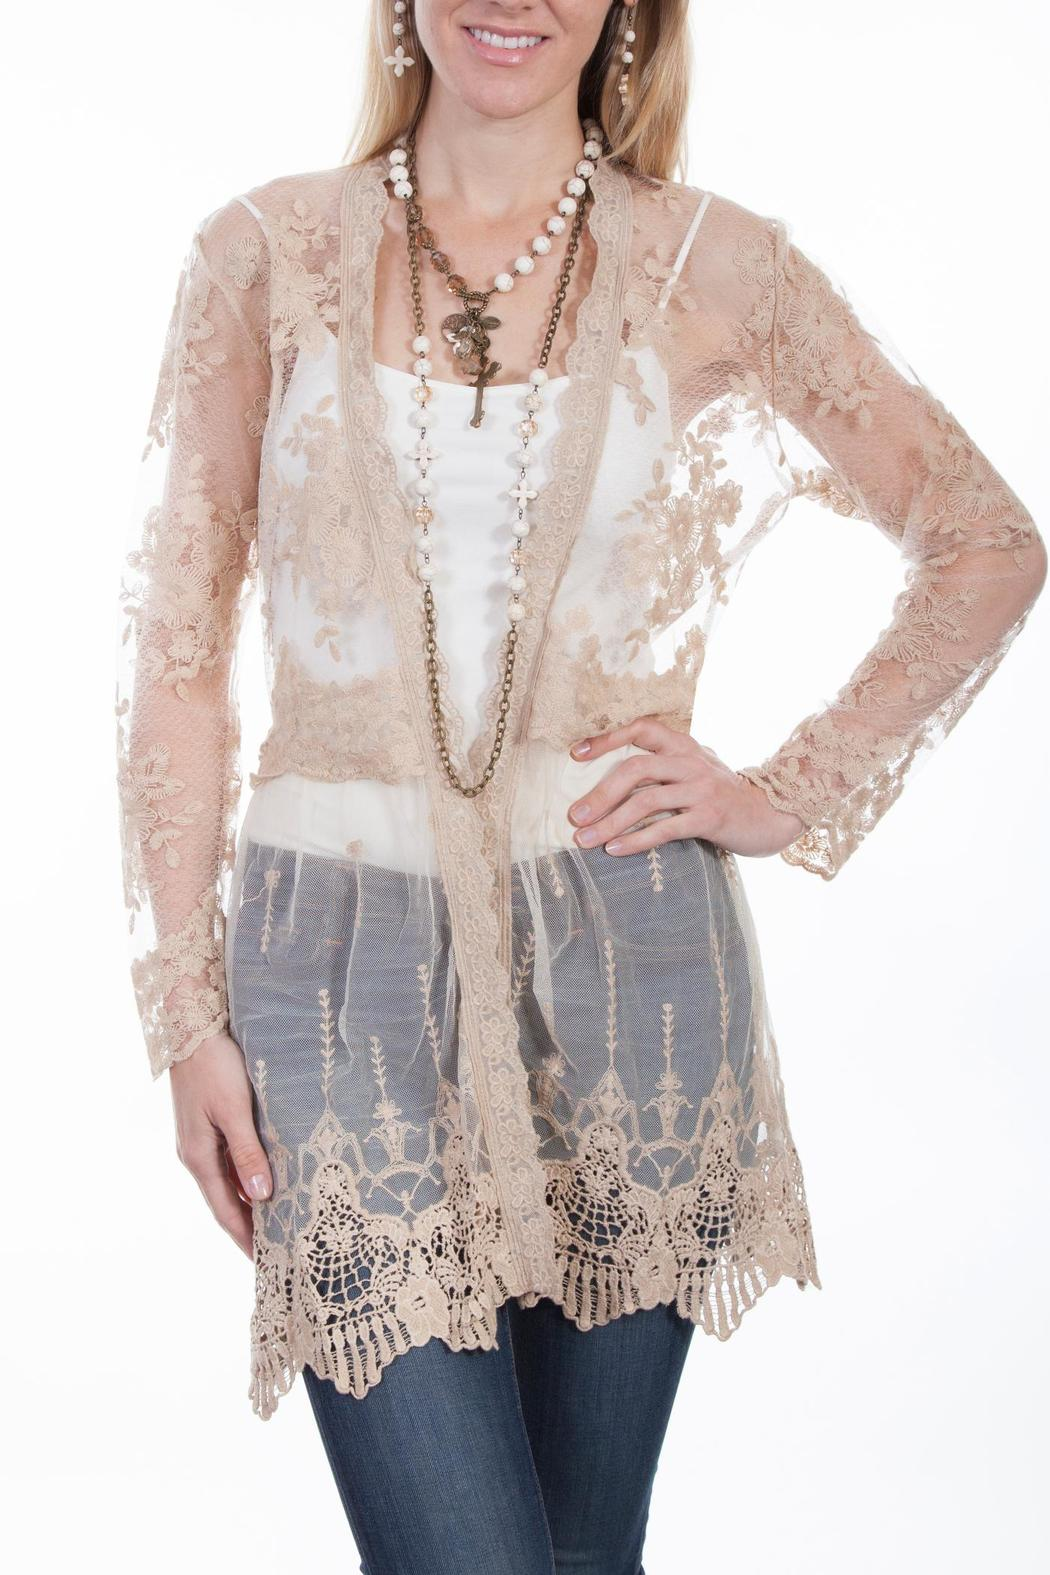 Scully Lace Cardigan from Roanoke by Old Fort Western Store ...